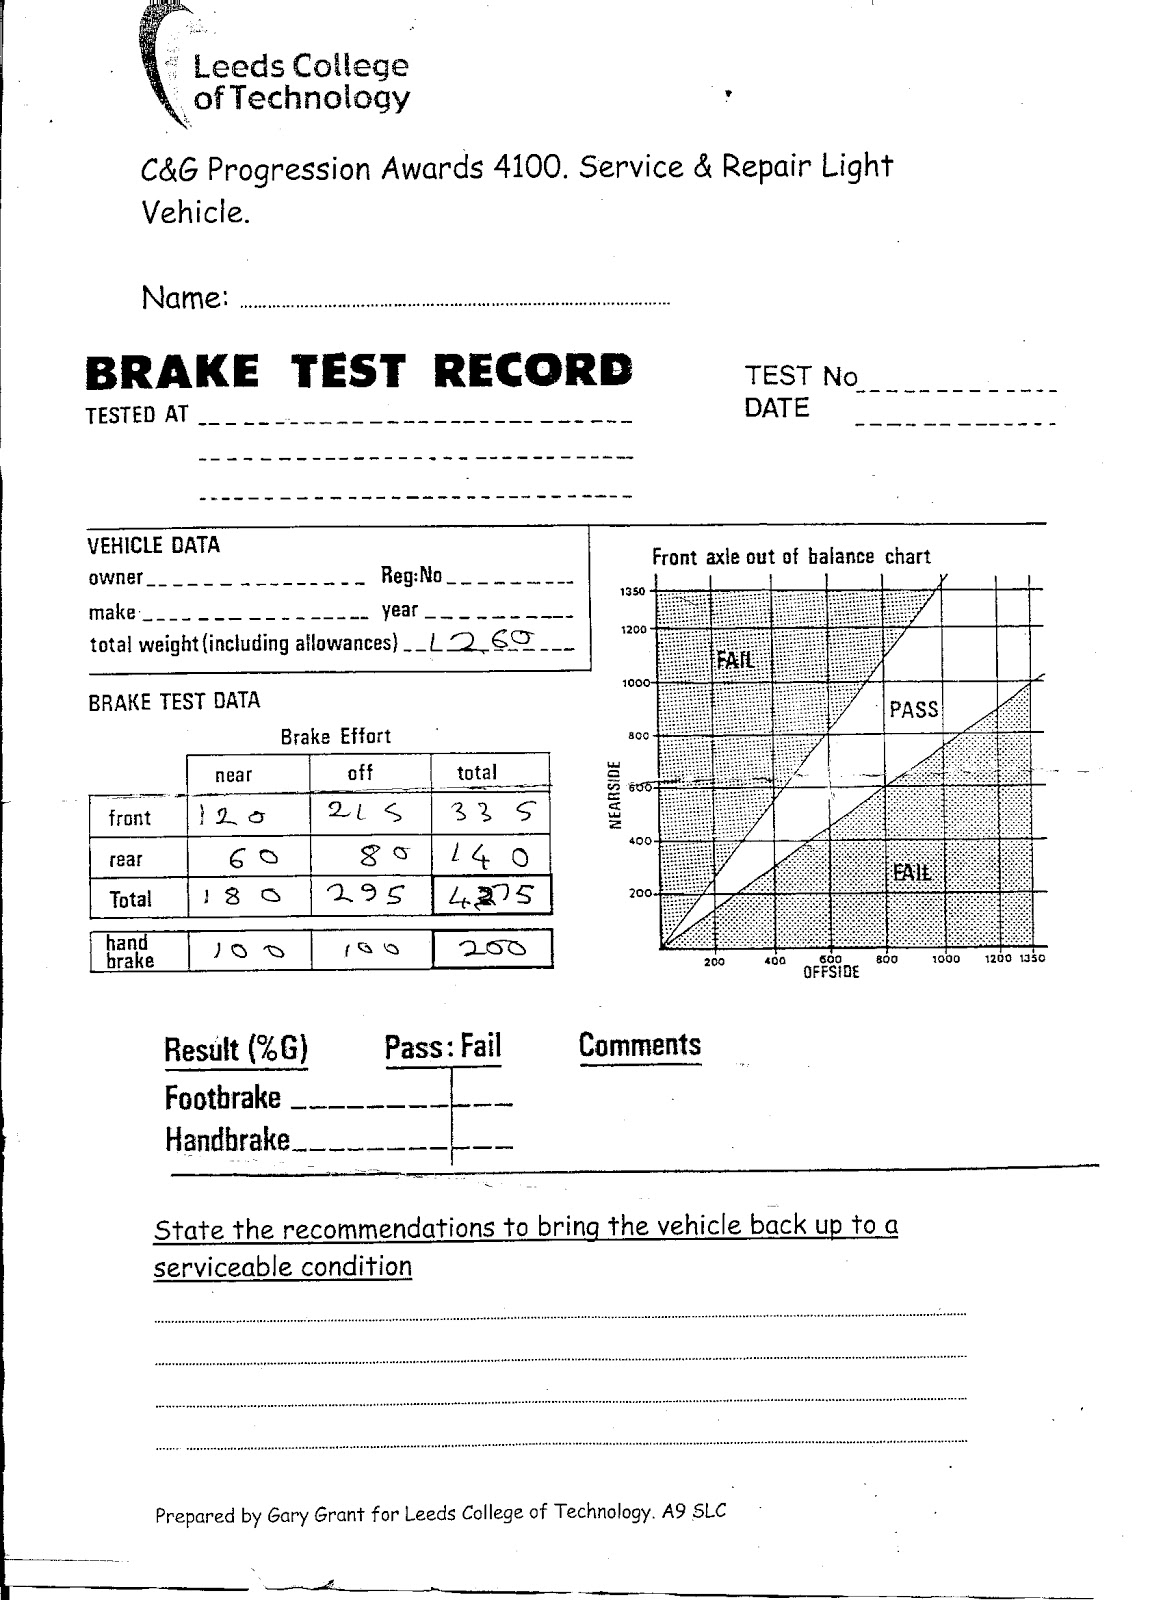 Brake test record sheet